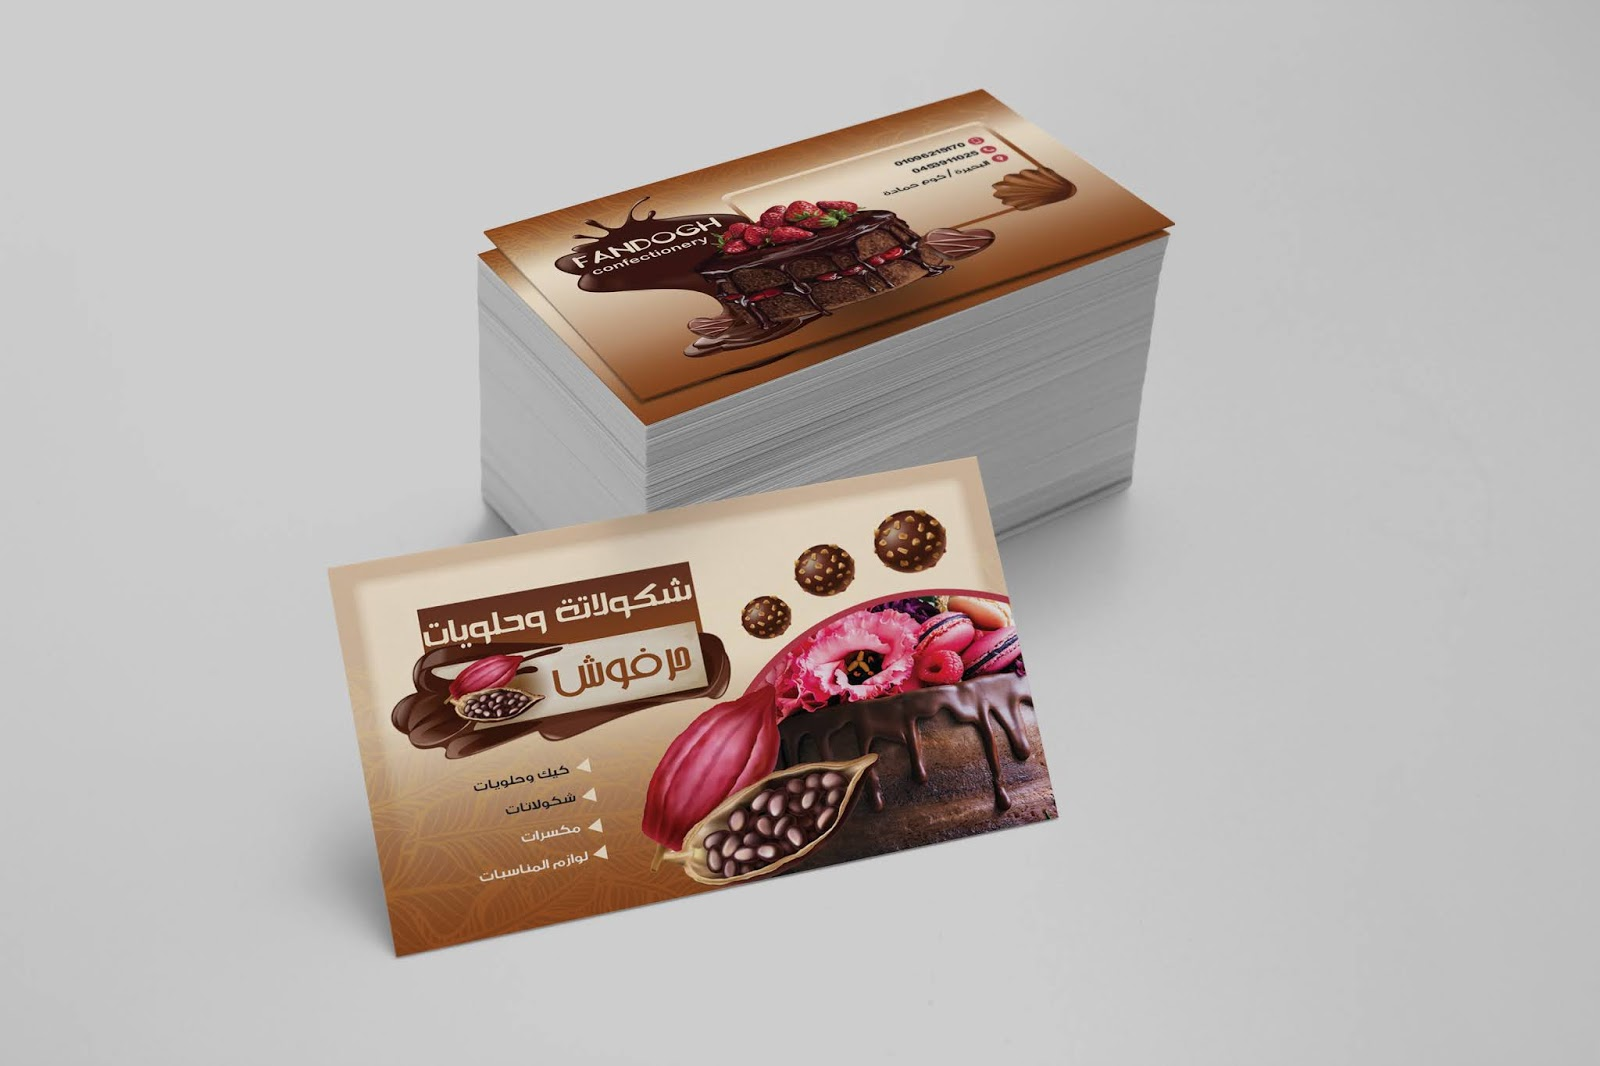 A personal card or a professional business card for sweets and chocolate shops